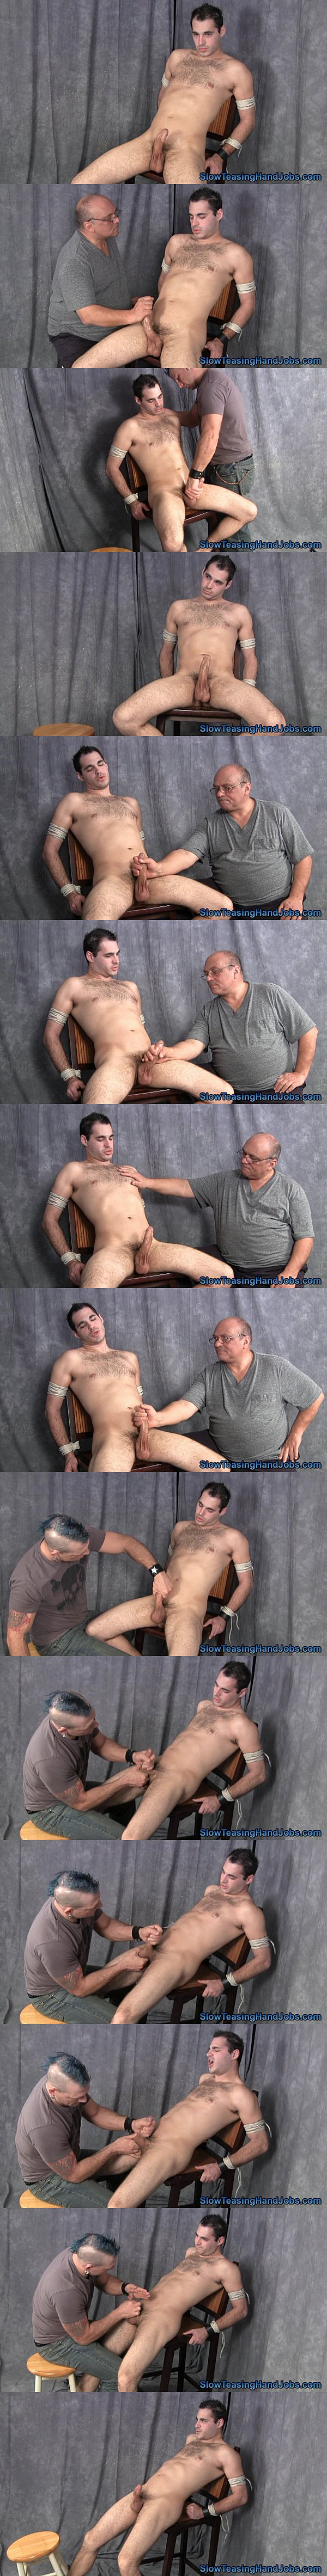 Handsome straight jock Roger gets edged and jerked off by master Rich and Scott in Tag Team Edging at Slowteasinghandjobs 02